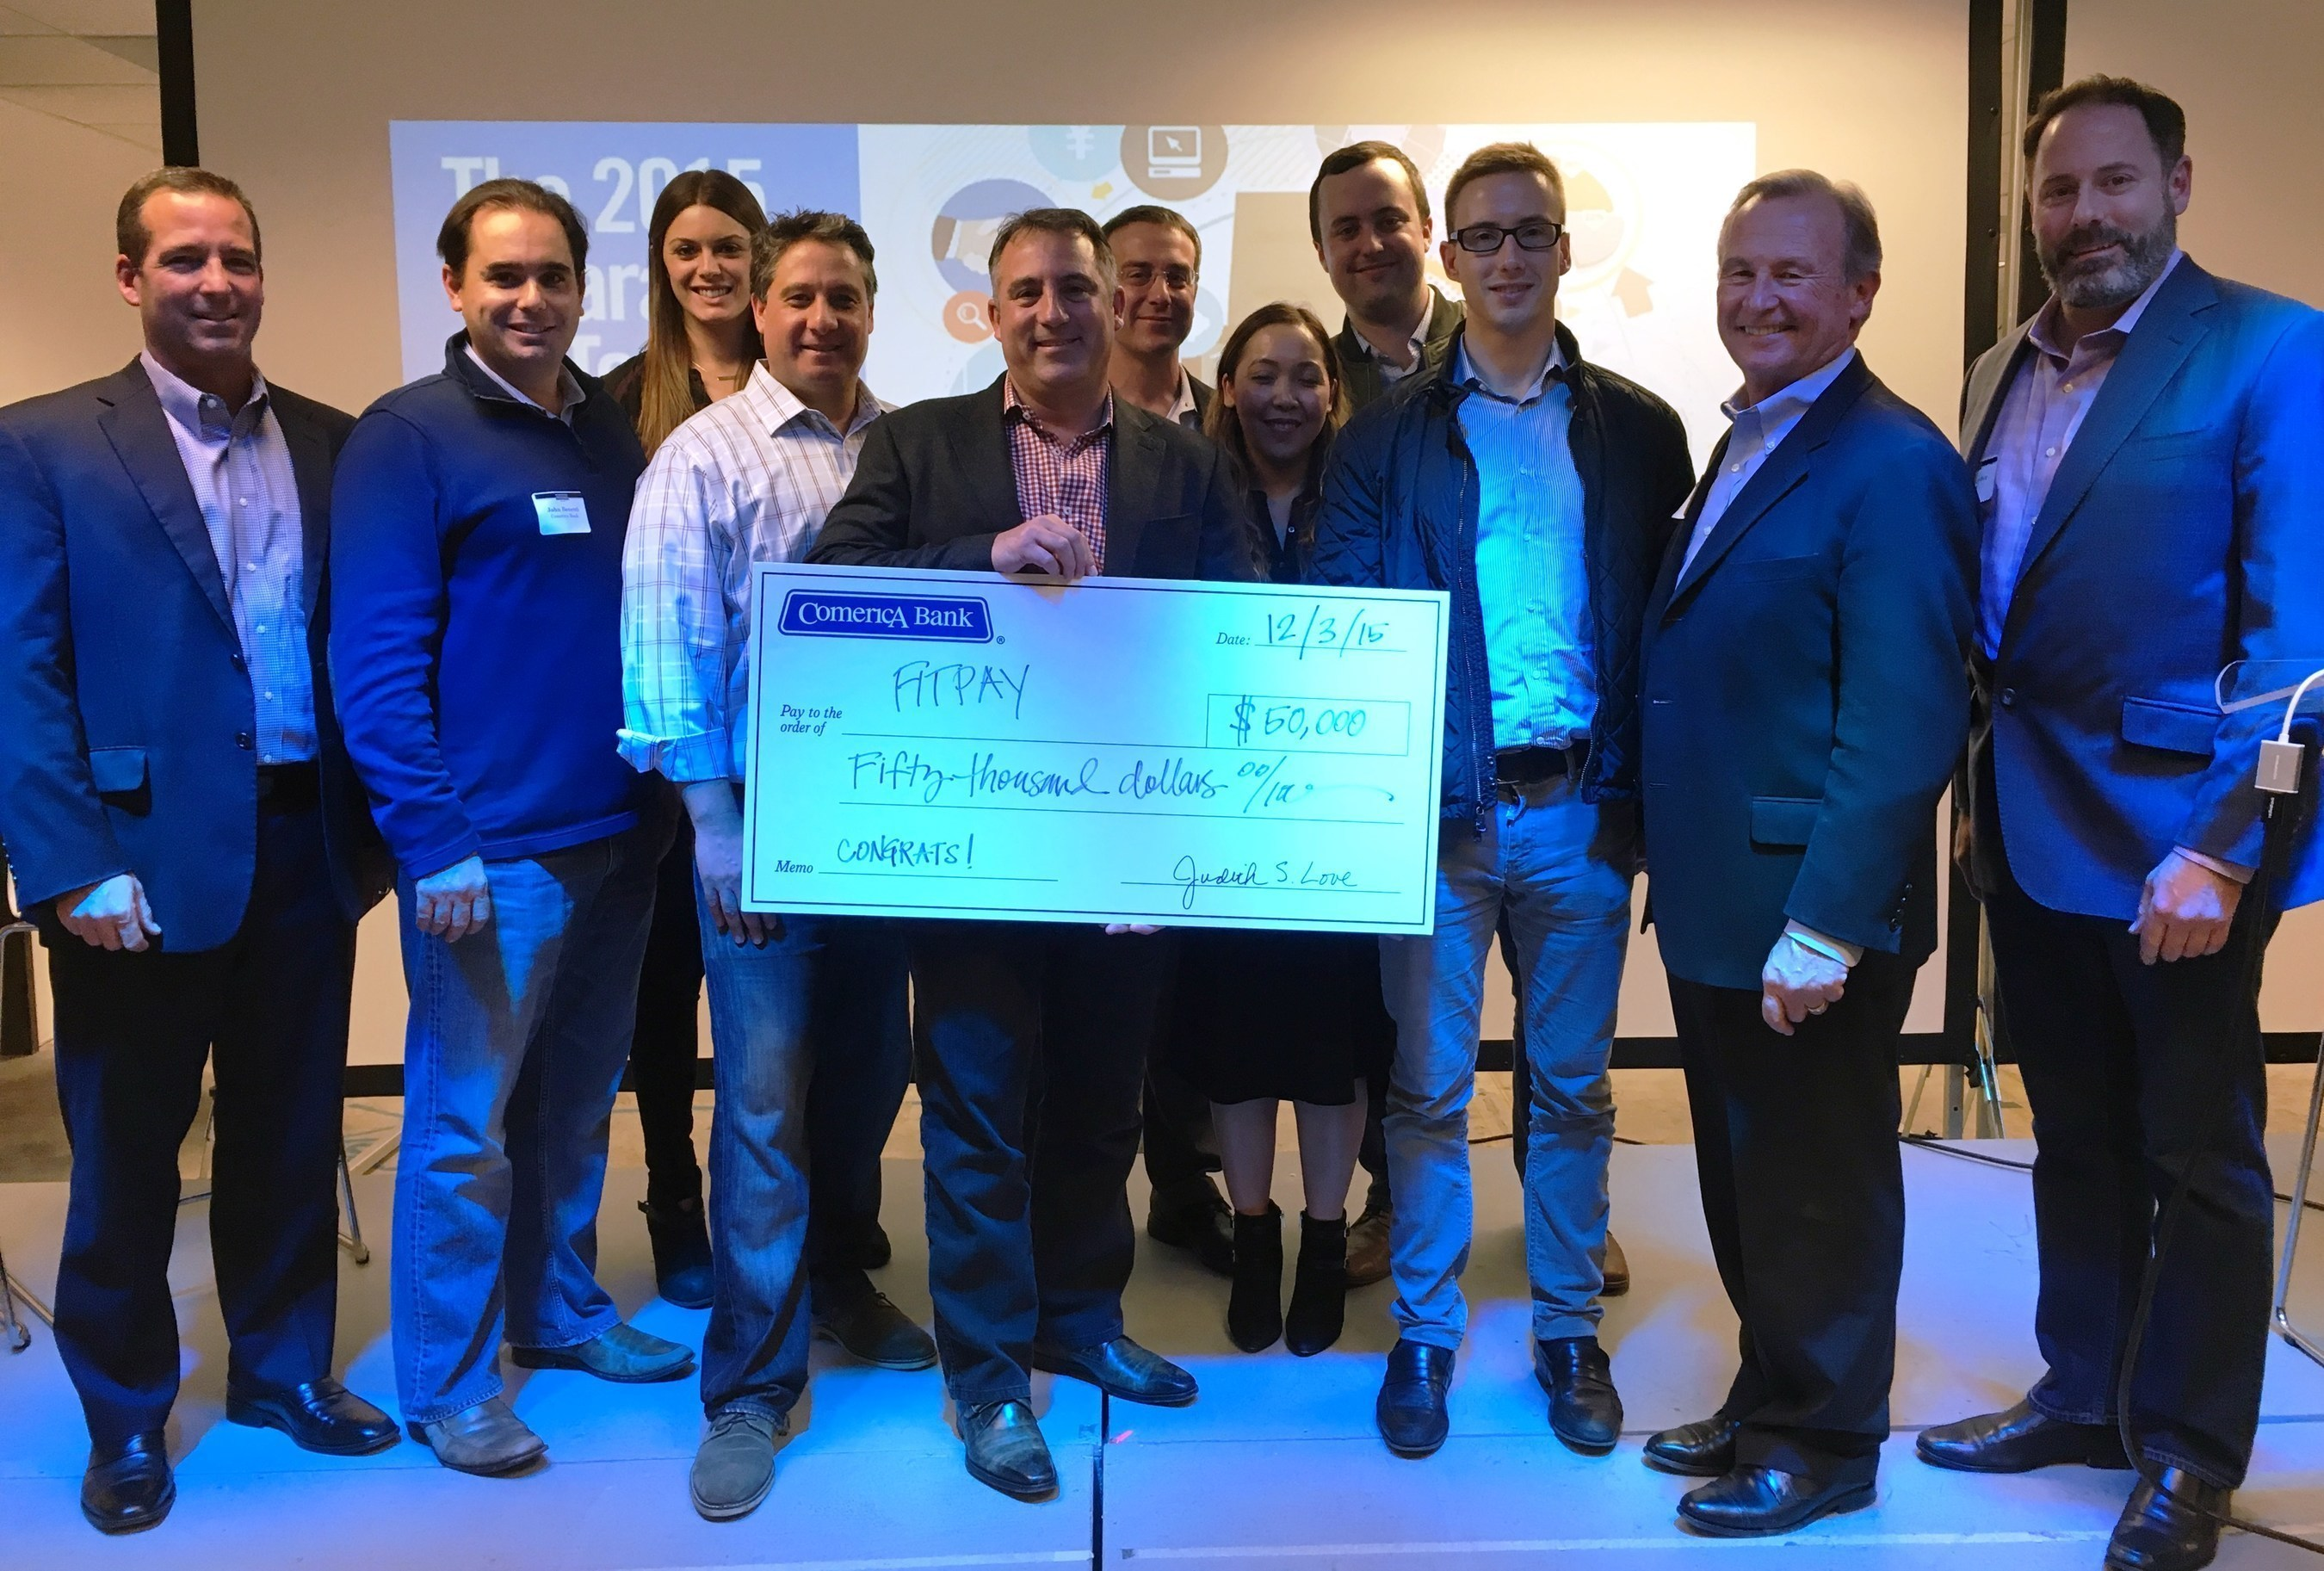 FitPay's CEO & Co-Founder Michael Orlando receives a $50,000 check for winning the Comerica RocketSpace Wearable FinTech Challenge.